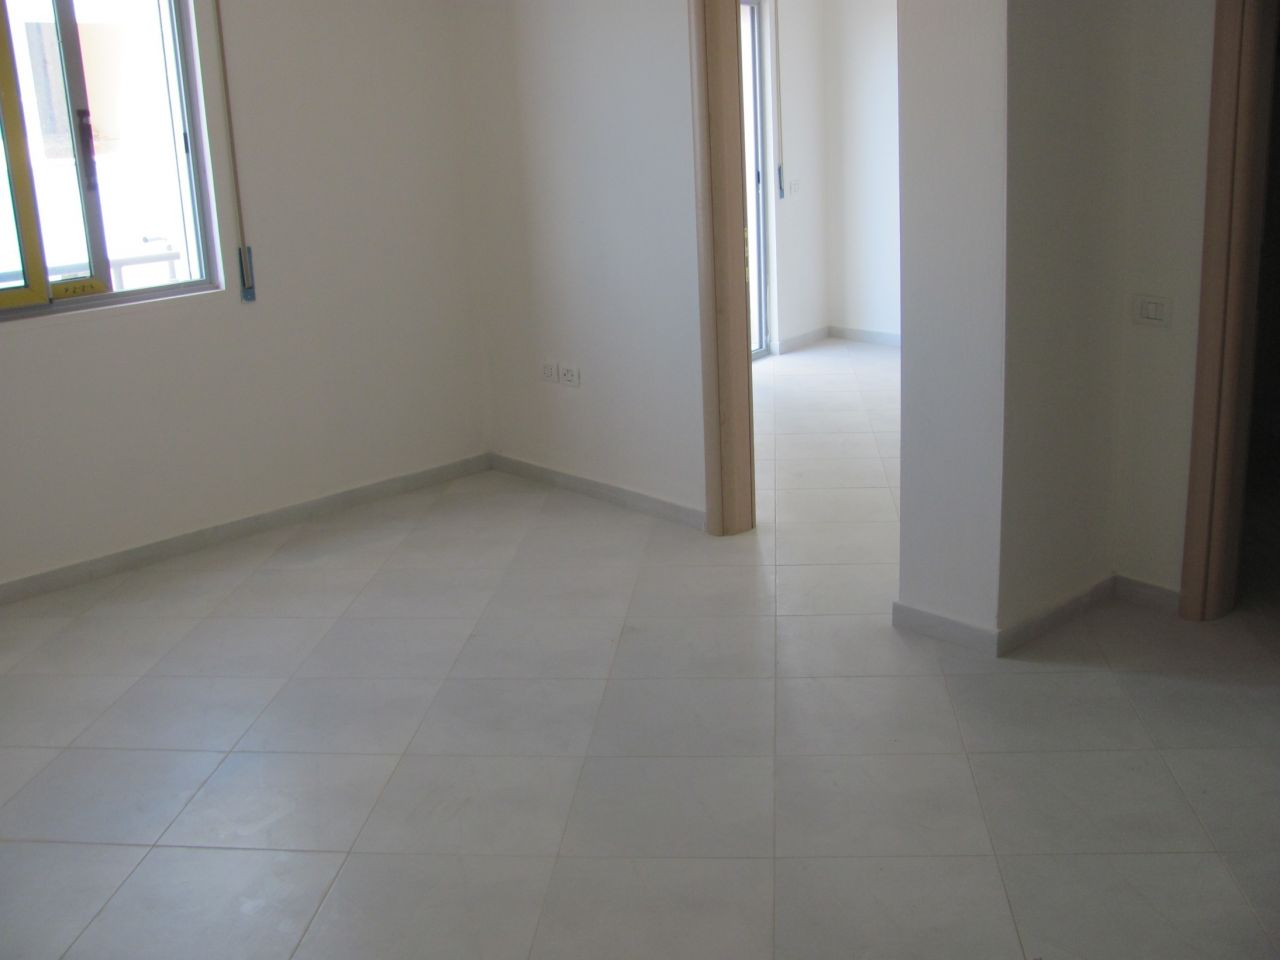 Finished apartments for sale in Vlore city very close to the sea